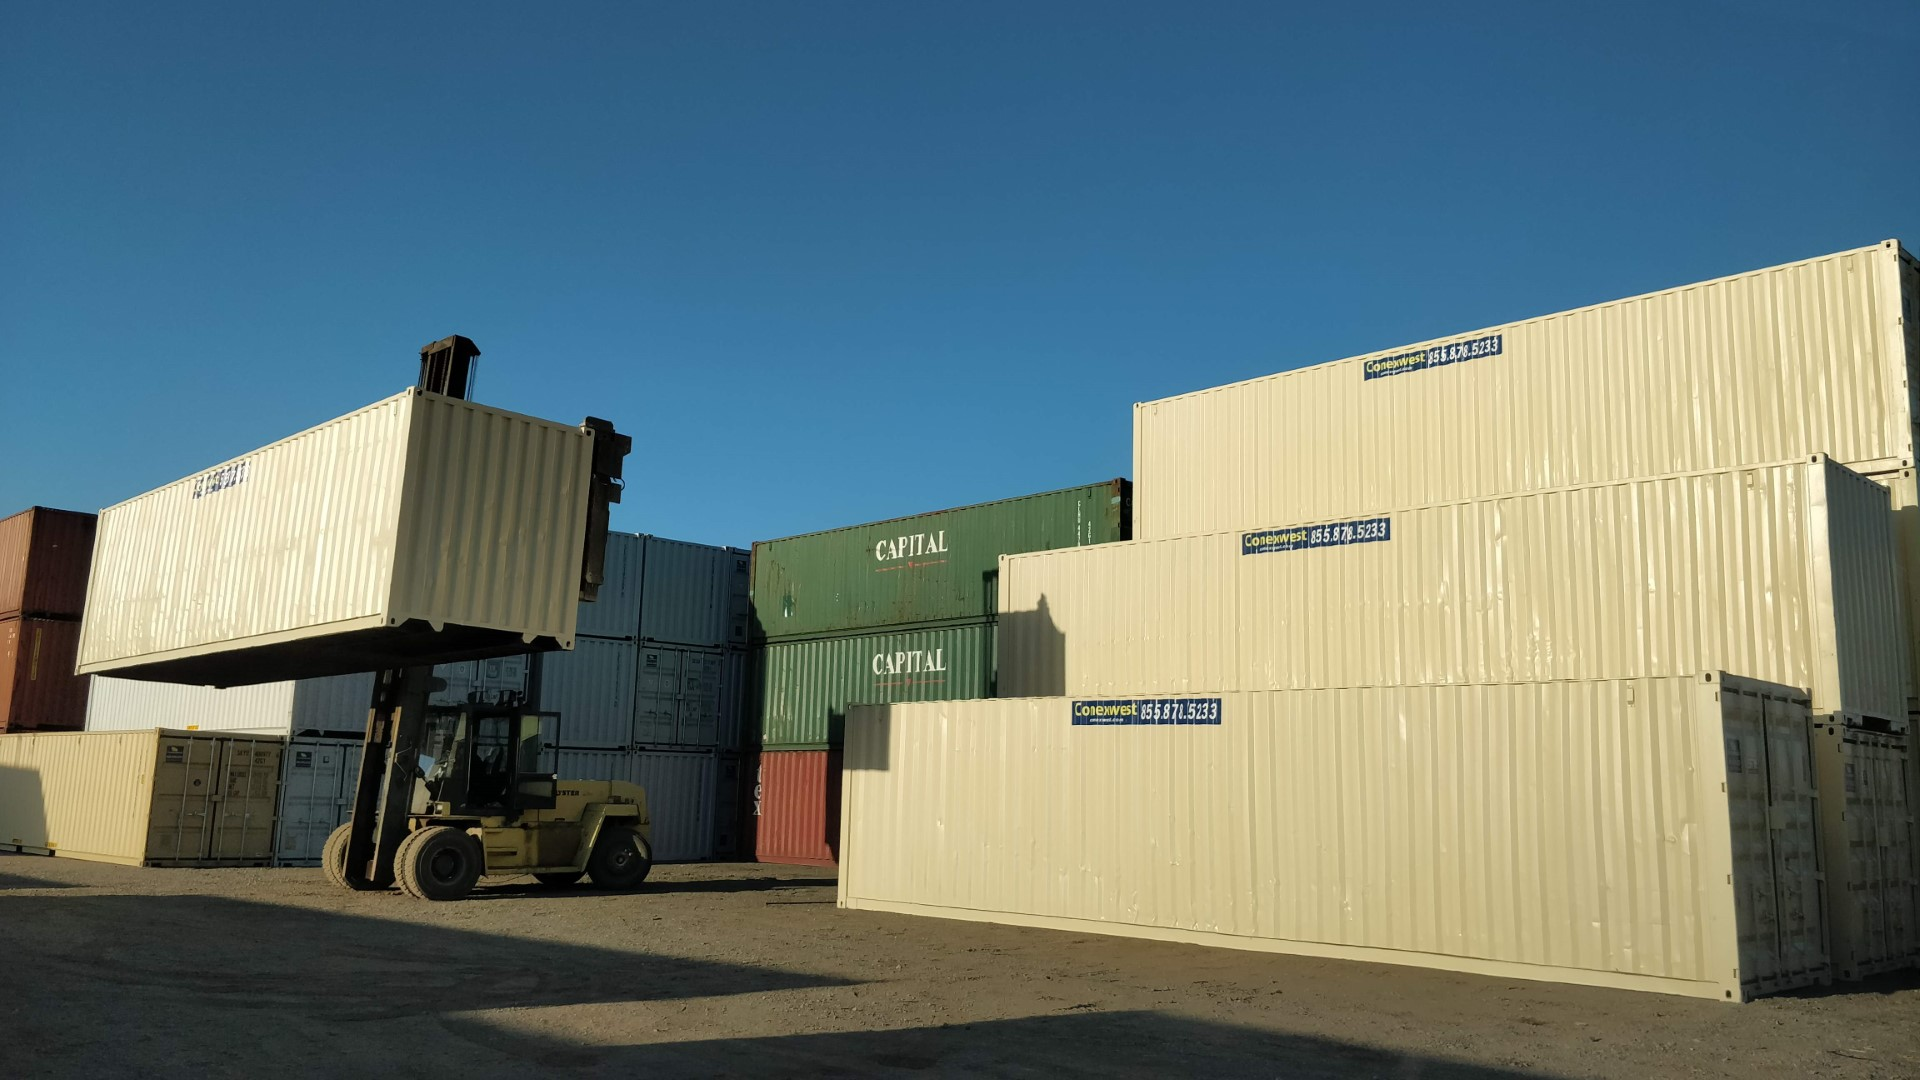 conexwest shipping container yard